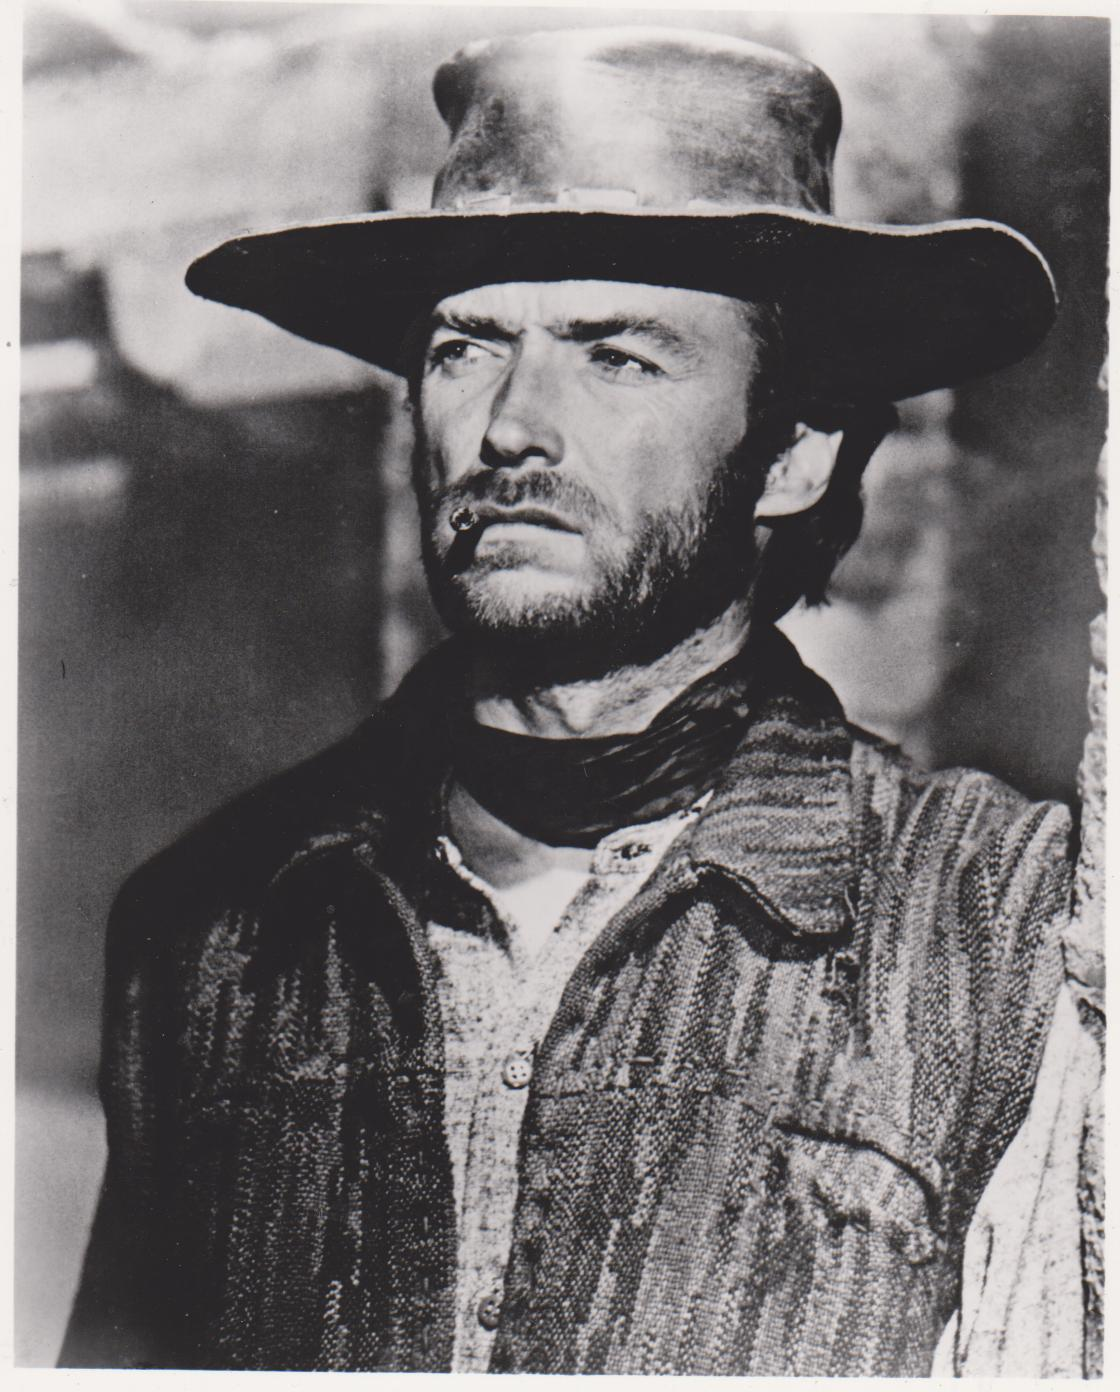 high plains drifter clint eastwood action is a vintage